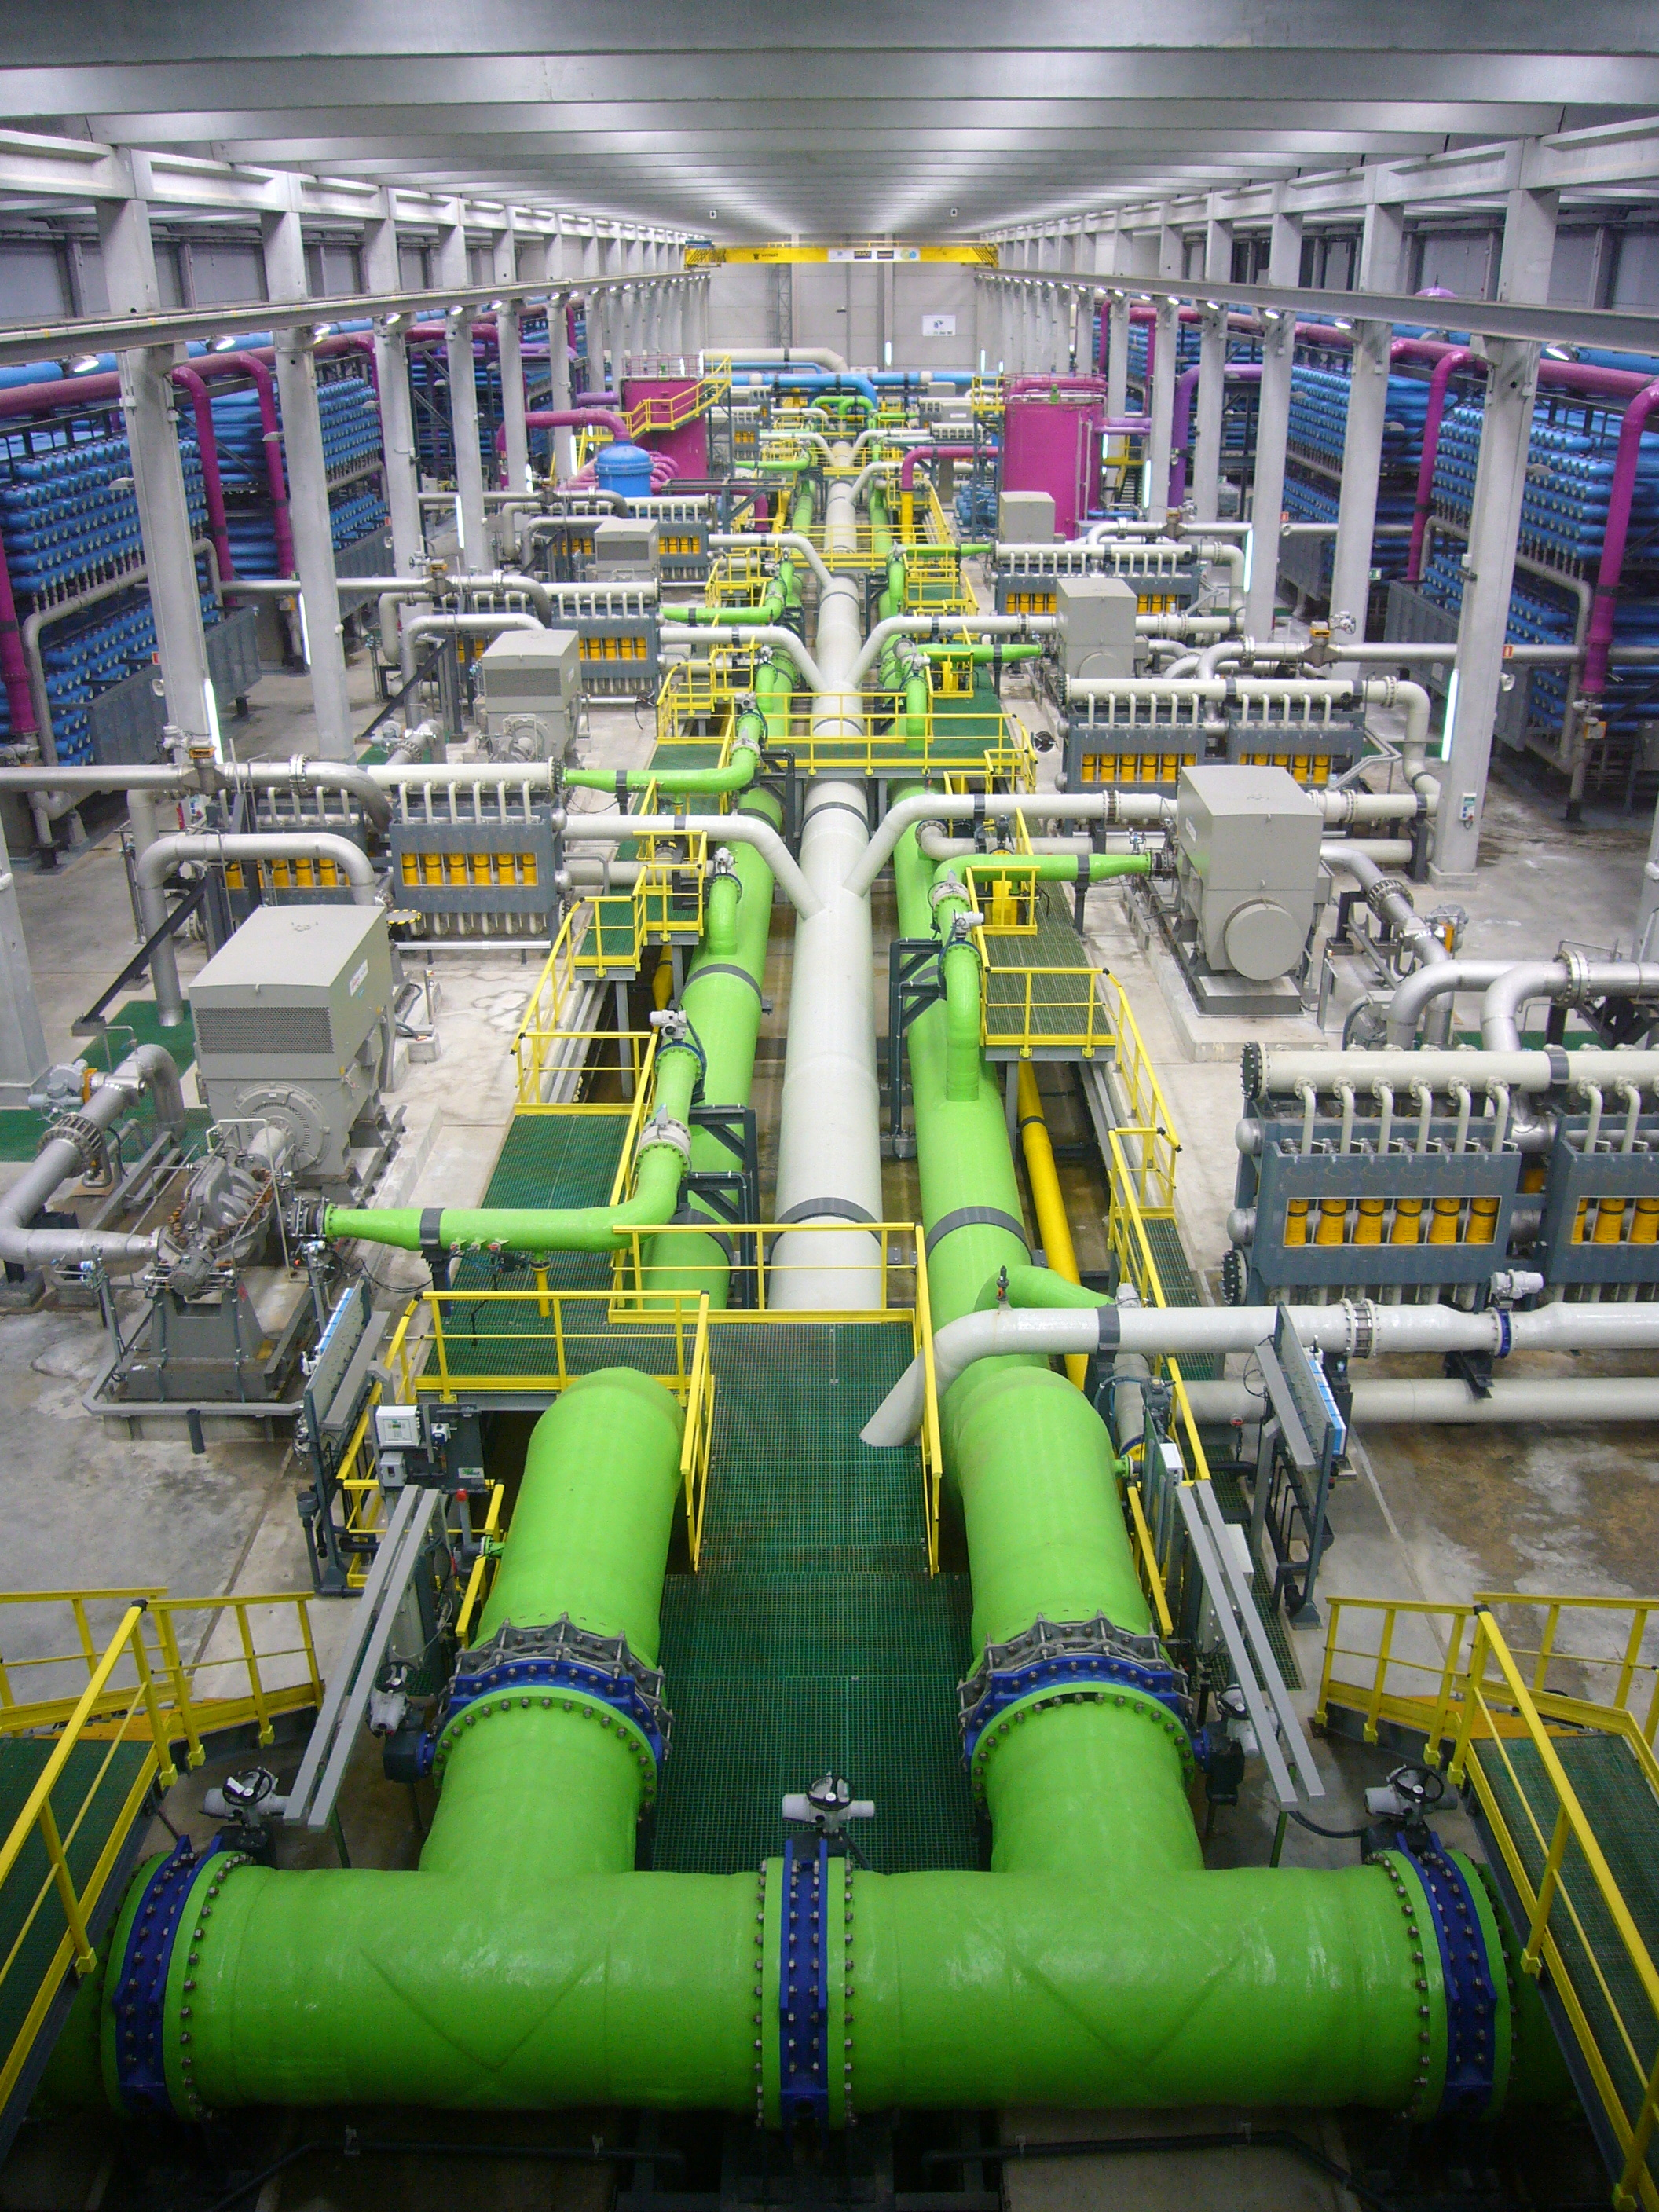 Reverse osmosis desalination plant in Barcelona, Spain. james Grellie/WikiMedia